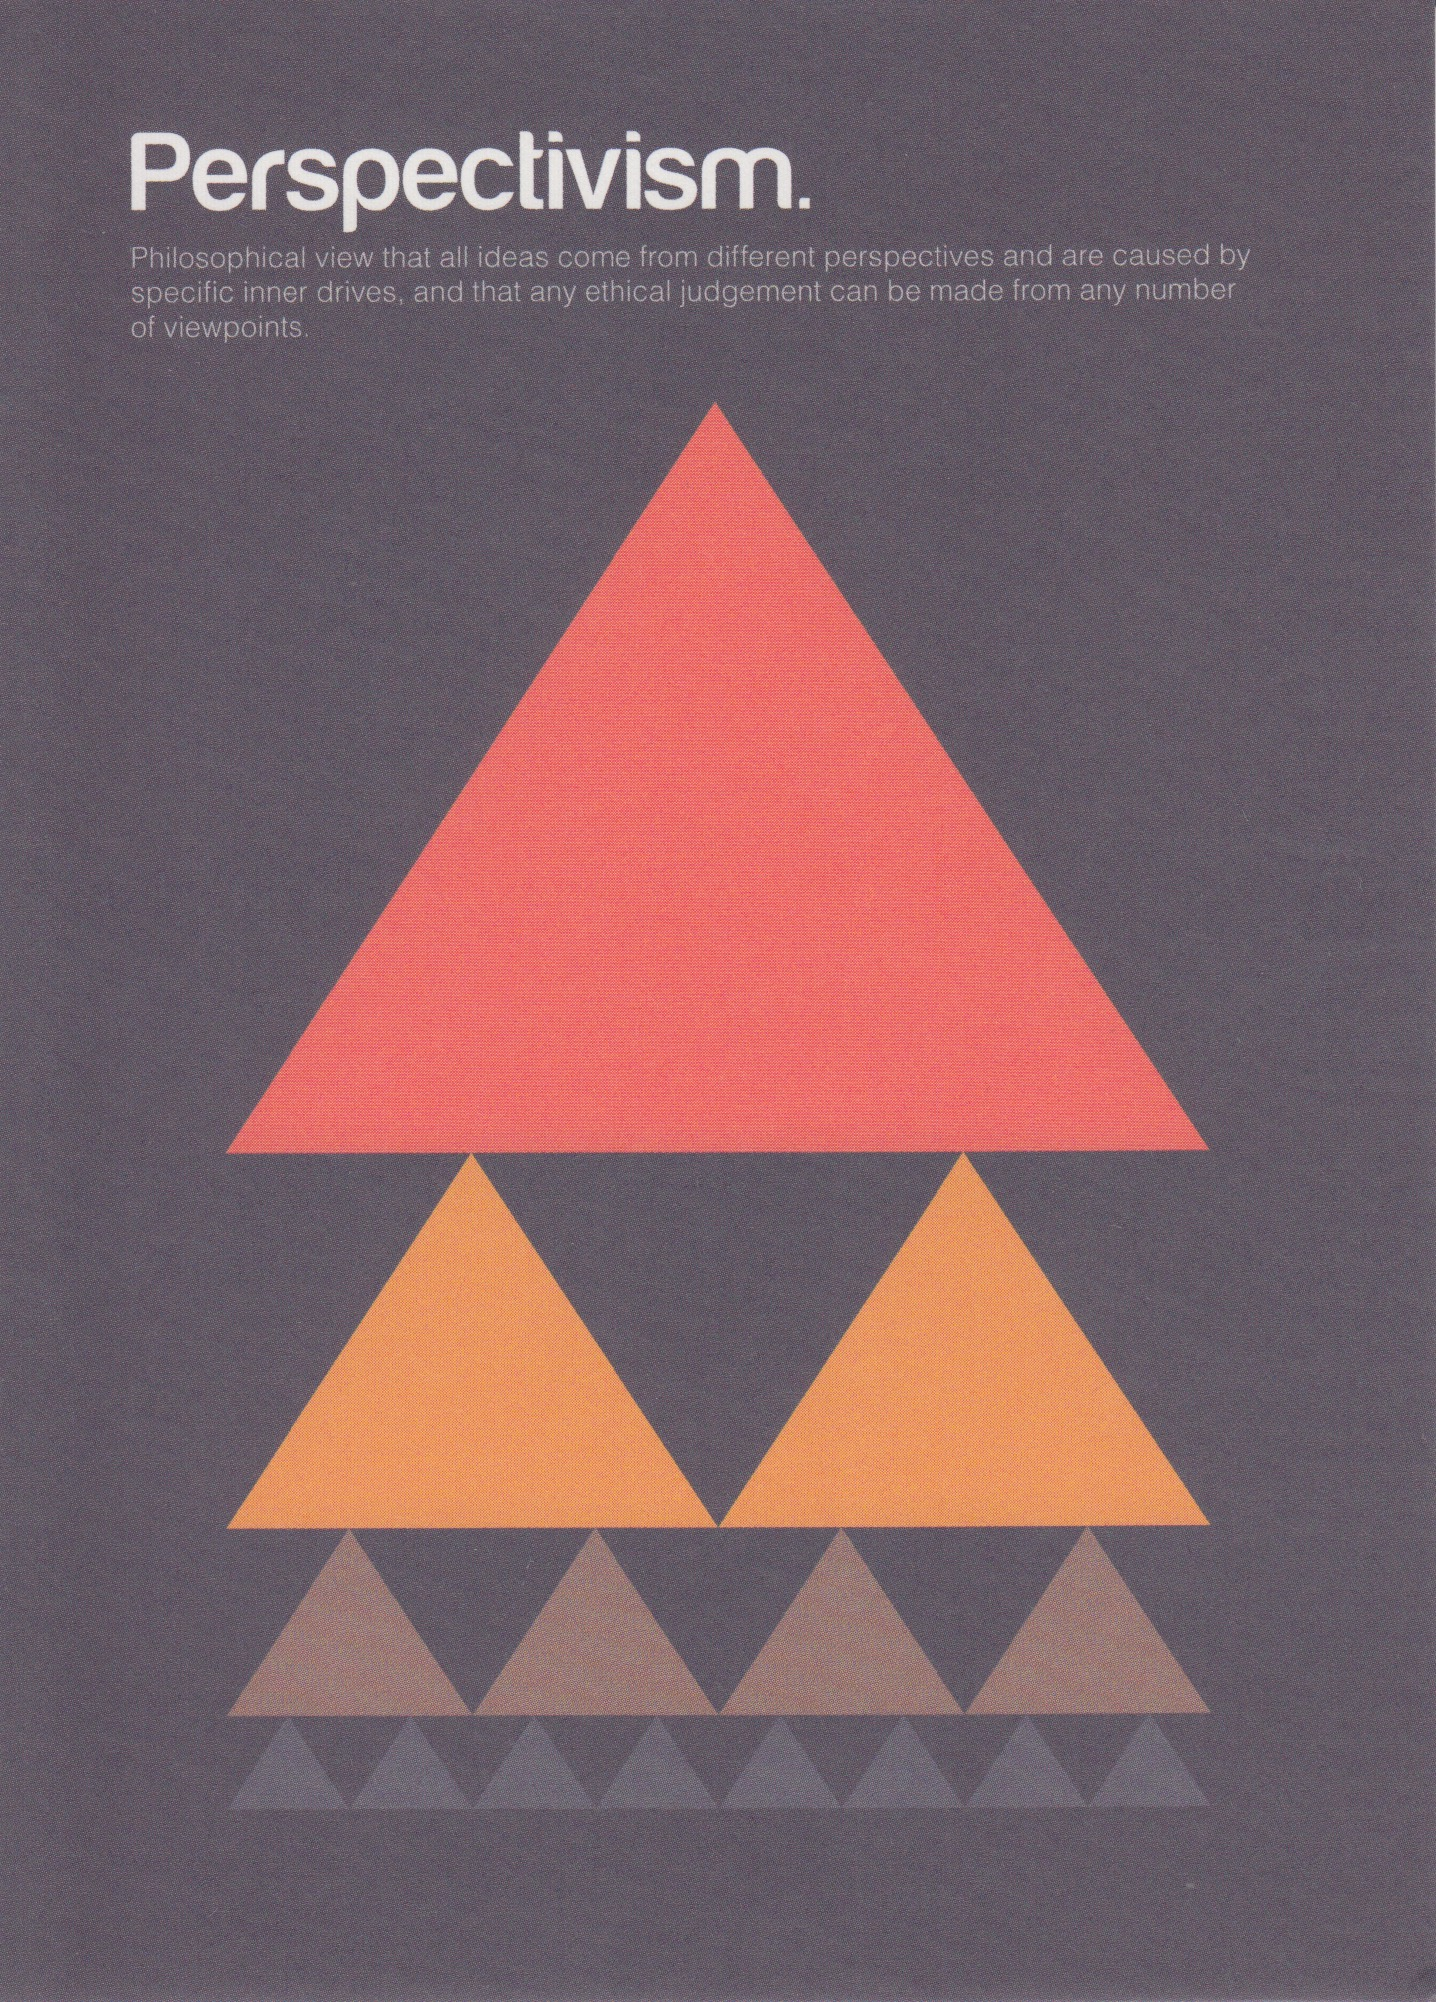 philographics-perspectivism